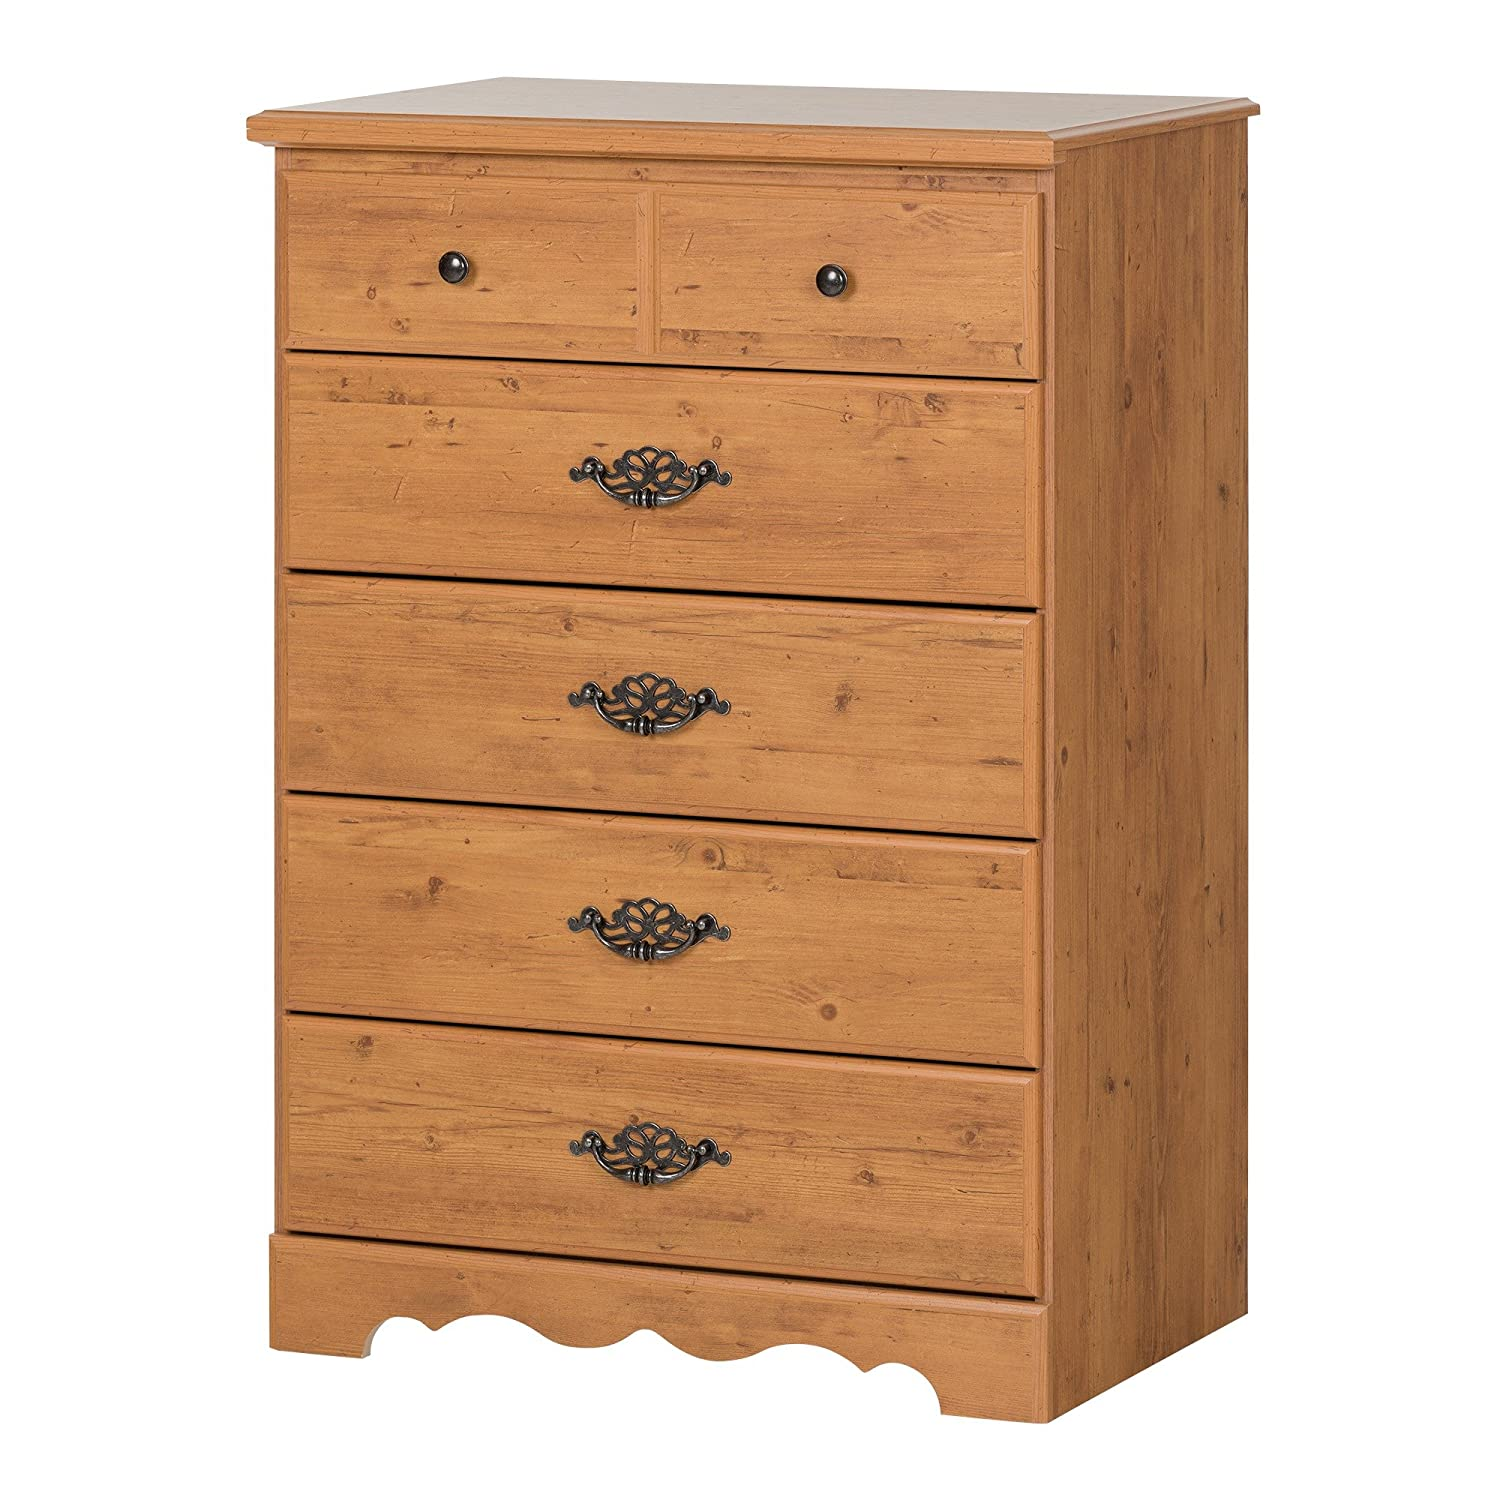 South Shore Prairie 5-Drawer Dresser, Country Pine with Metal Handles and Knobs 3232035 5204